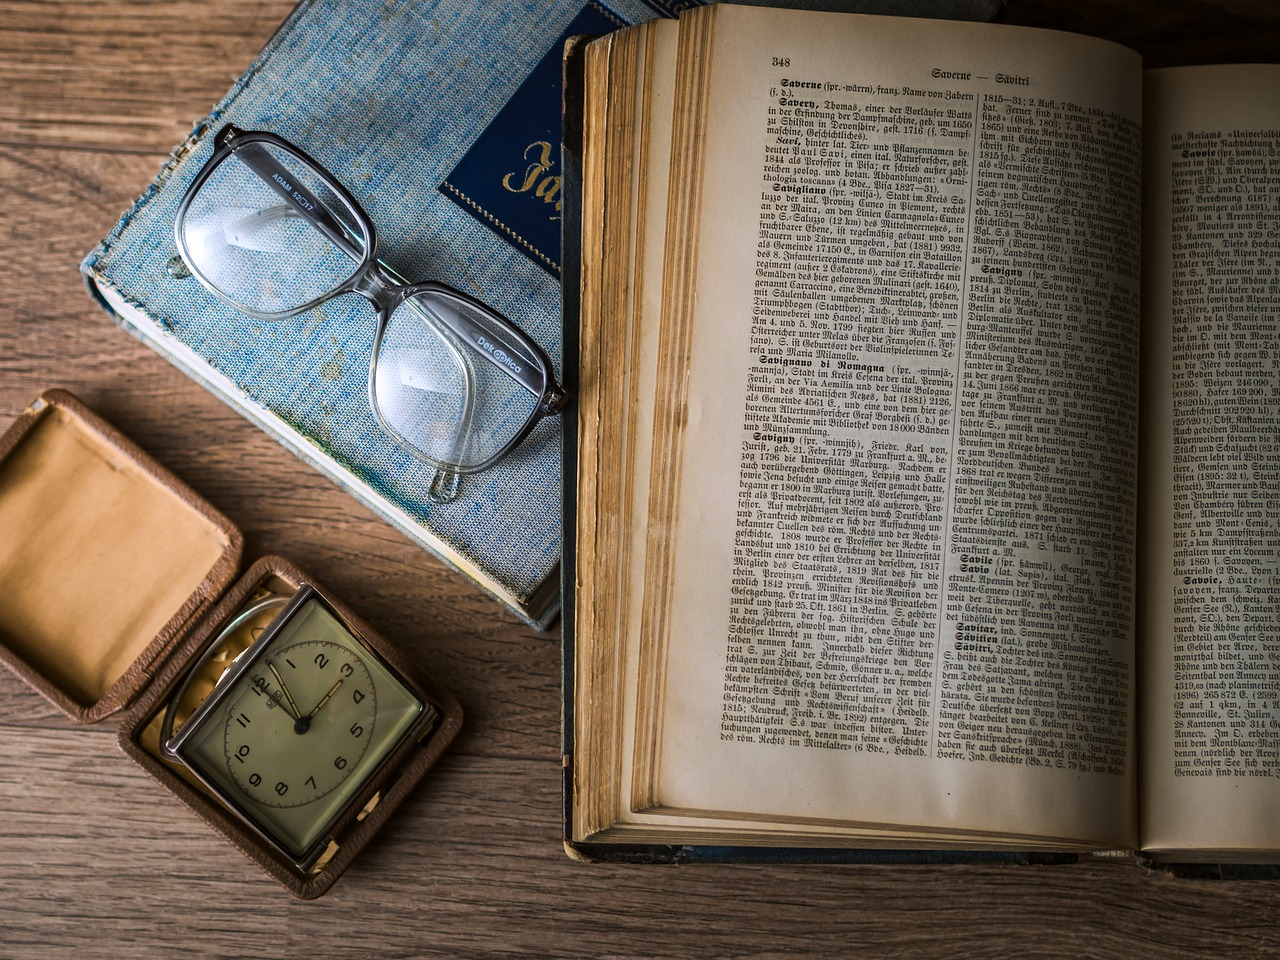 historical book, glasses, clock